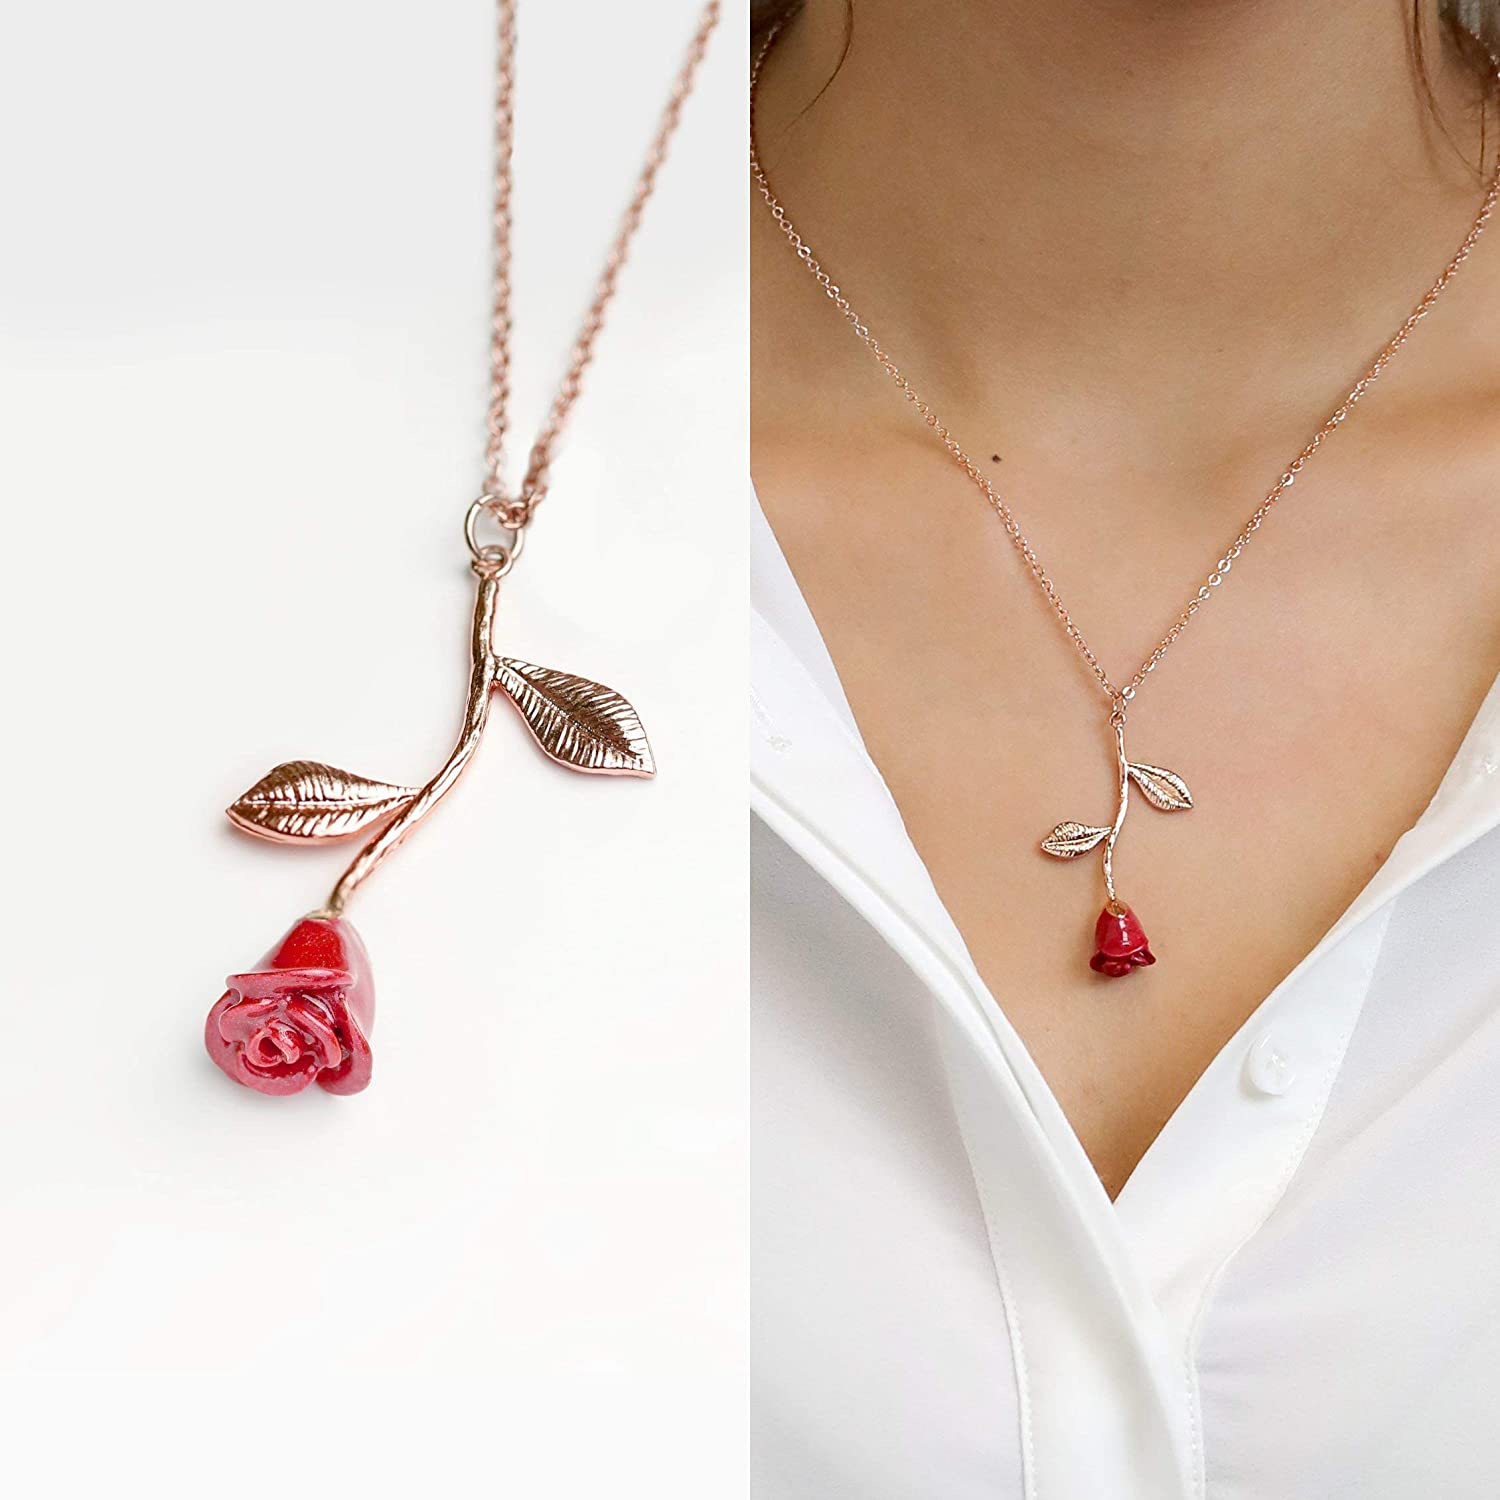 Amazon Com Beauty And The Beast Rose Necklace In Red Petal And Rose Gold Anniversary Gift For Her Personalized Bridesmaid Gift Unique Gifts For Women Mother S Day Gifts 3ern Handmade